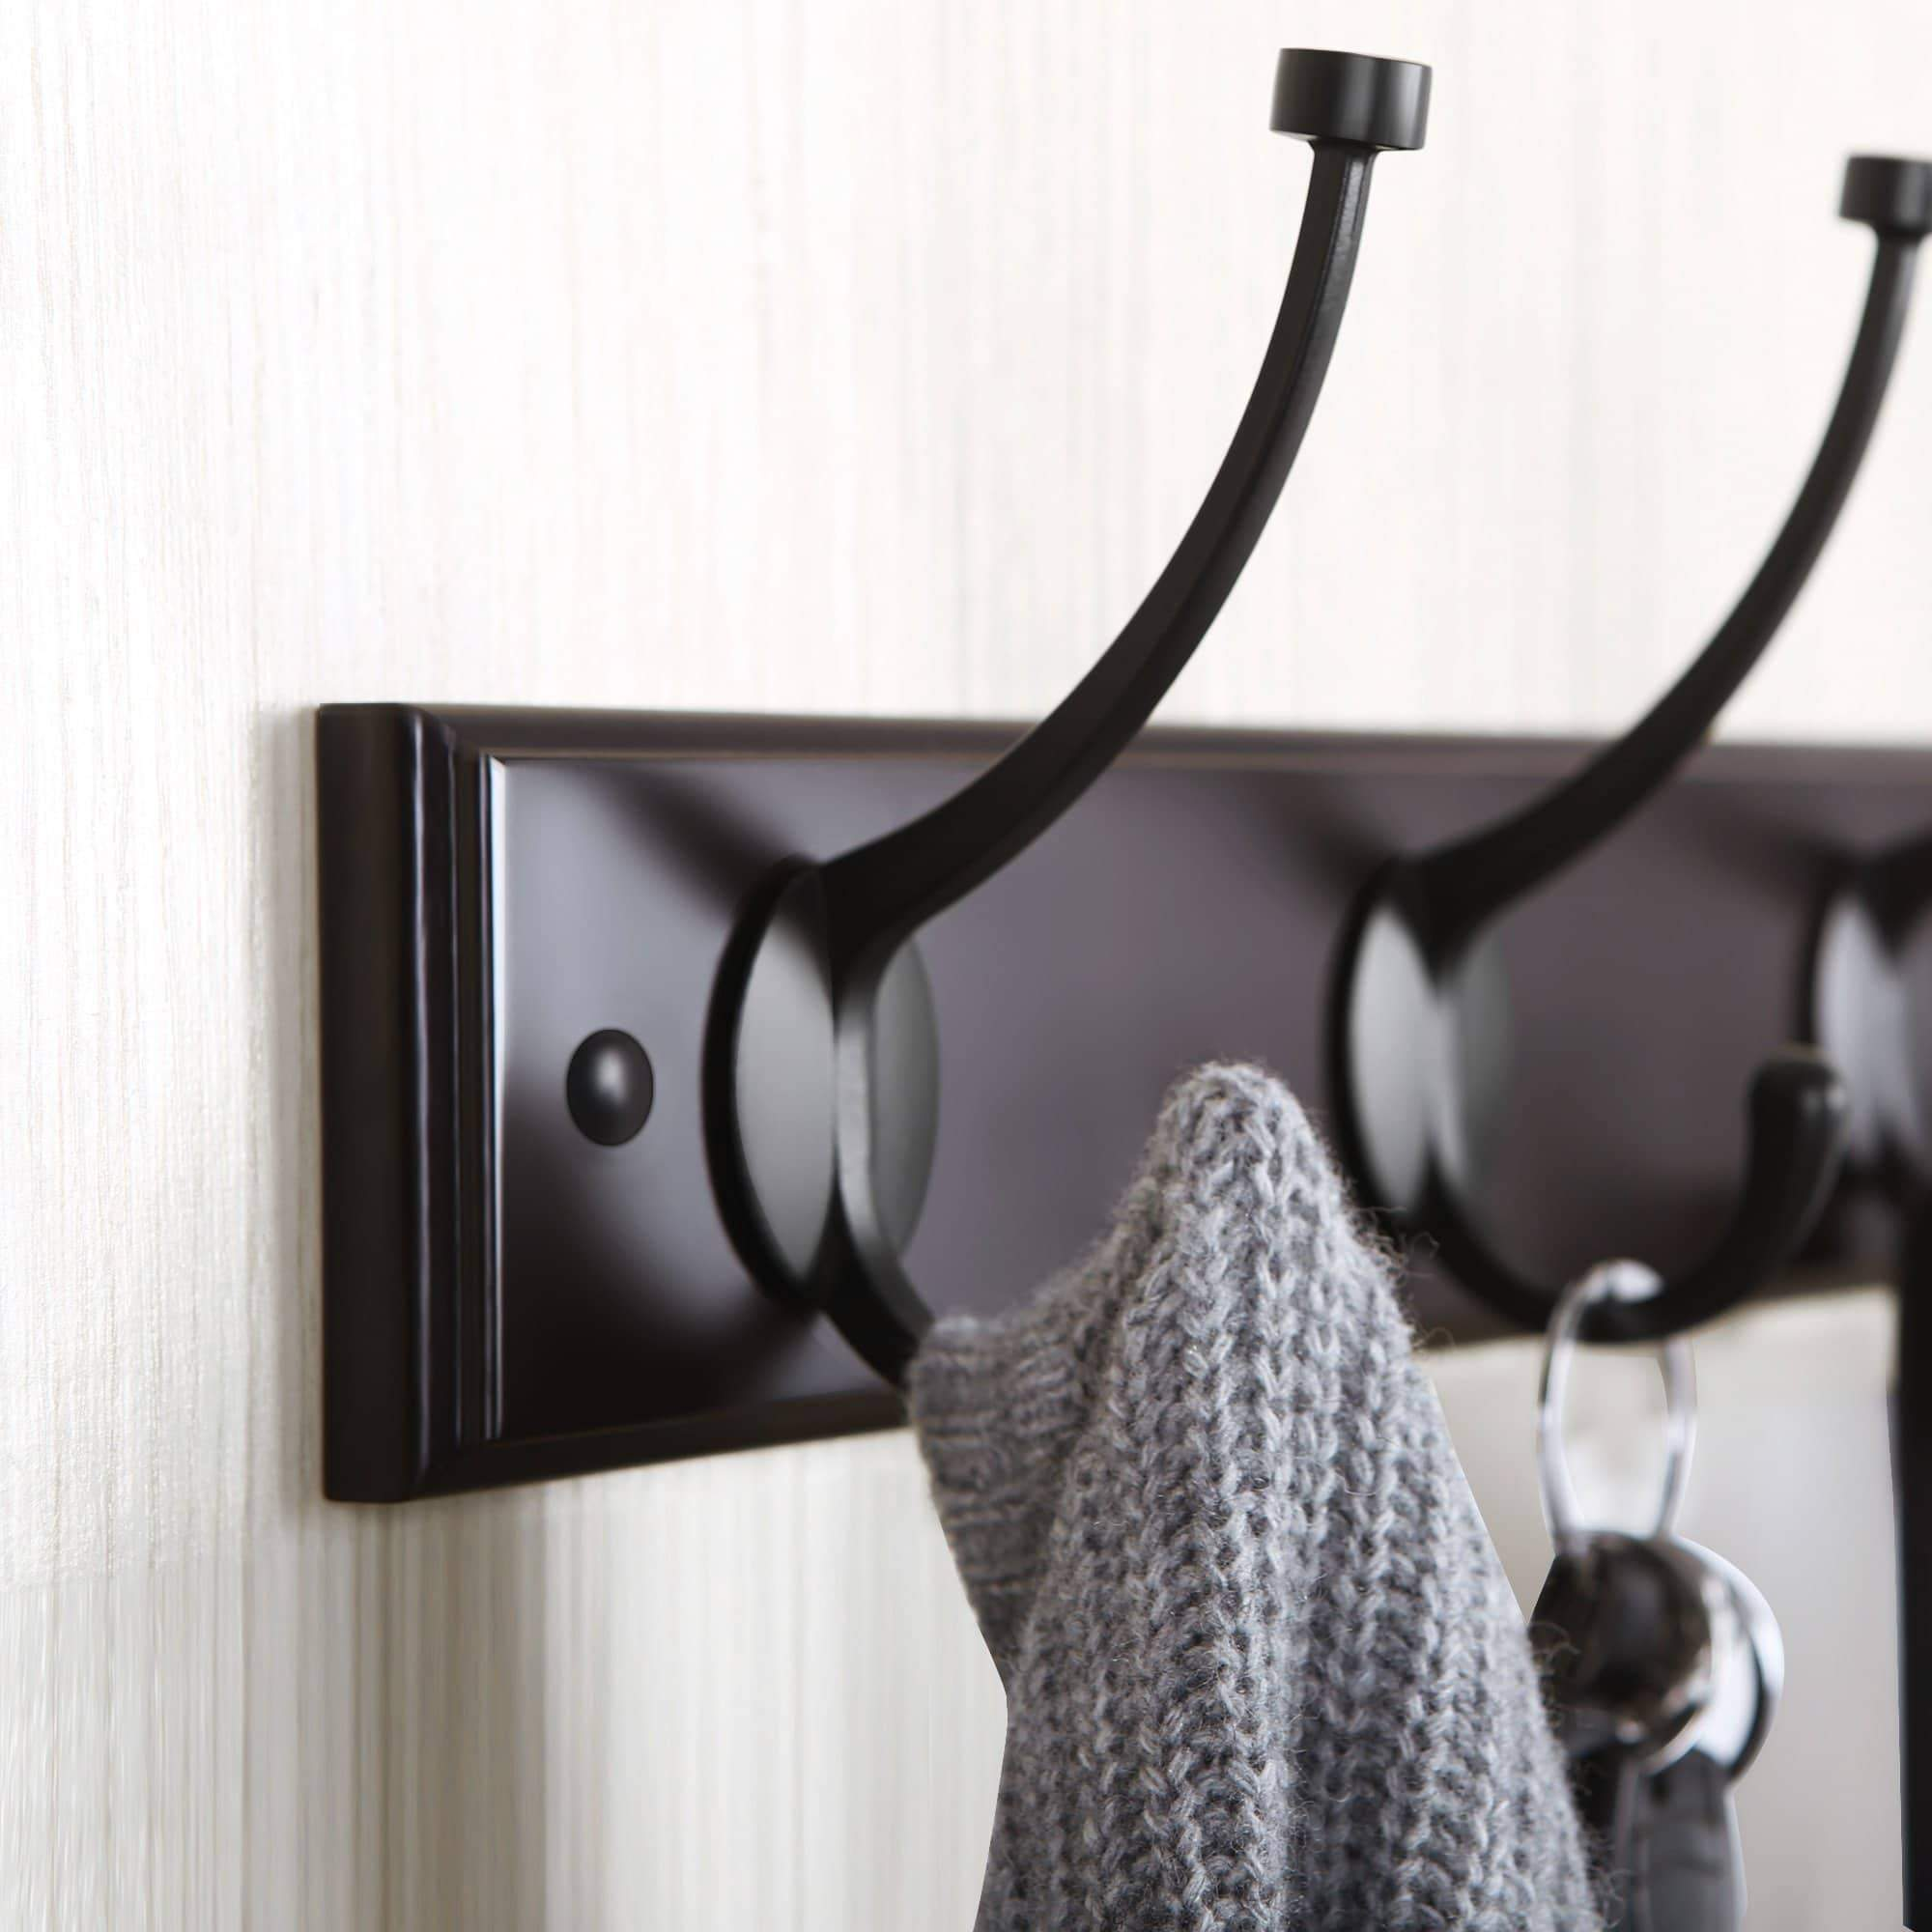 Storage songmics wooden wall mounted coat rack 16 inch rail with 4 metal hooks for entryway bathroom closet room dark brown ulhr20z